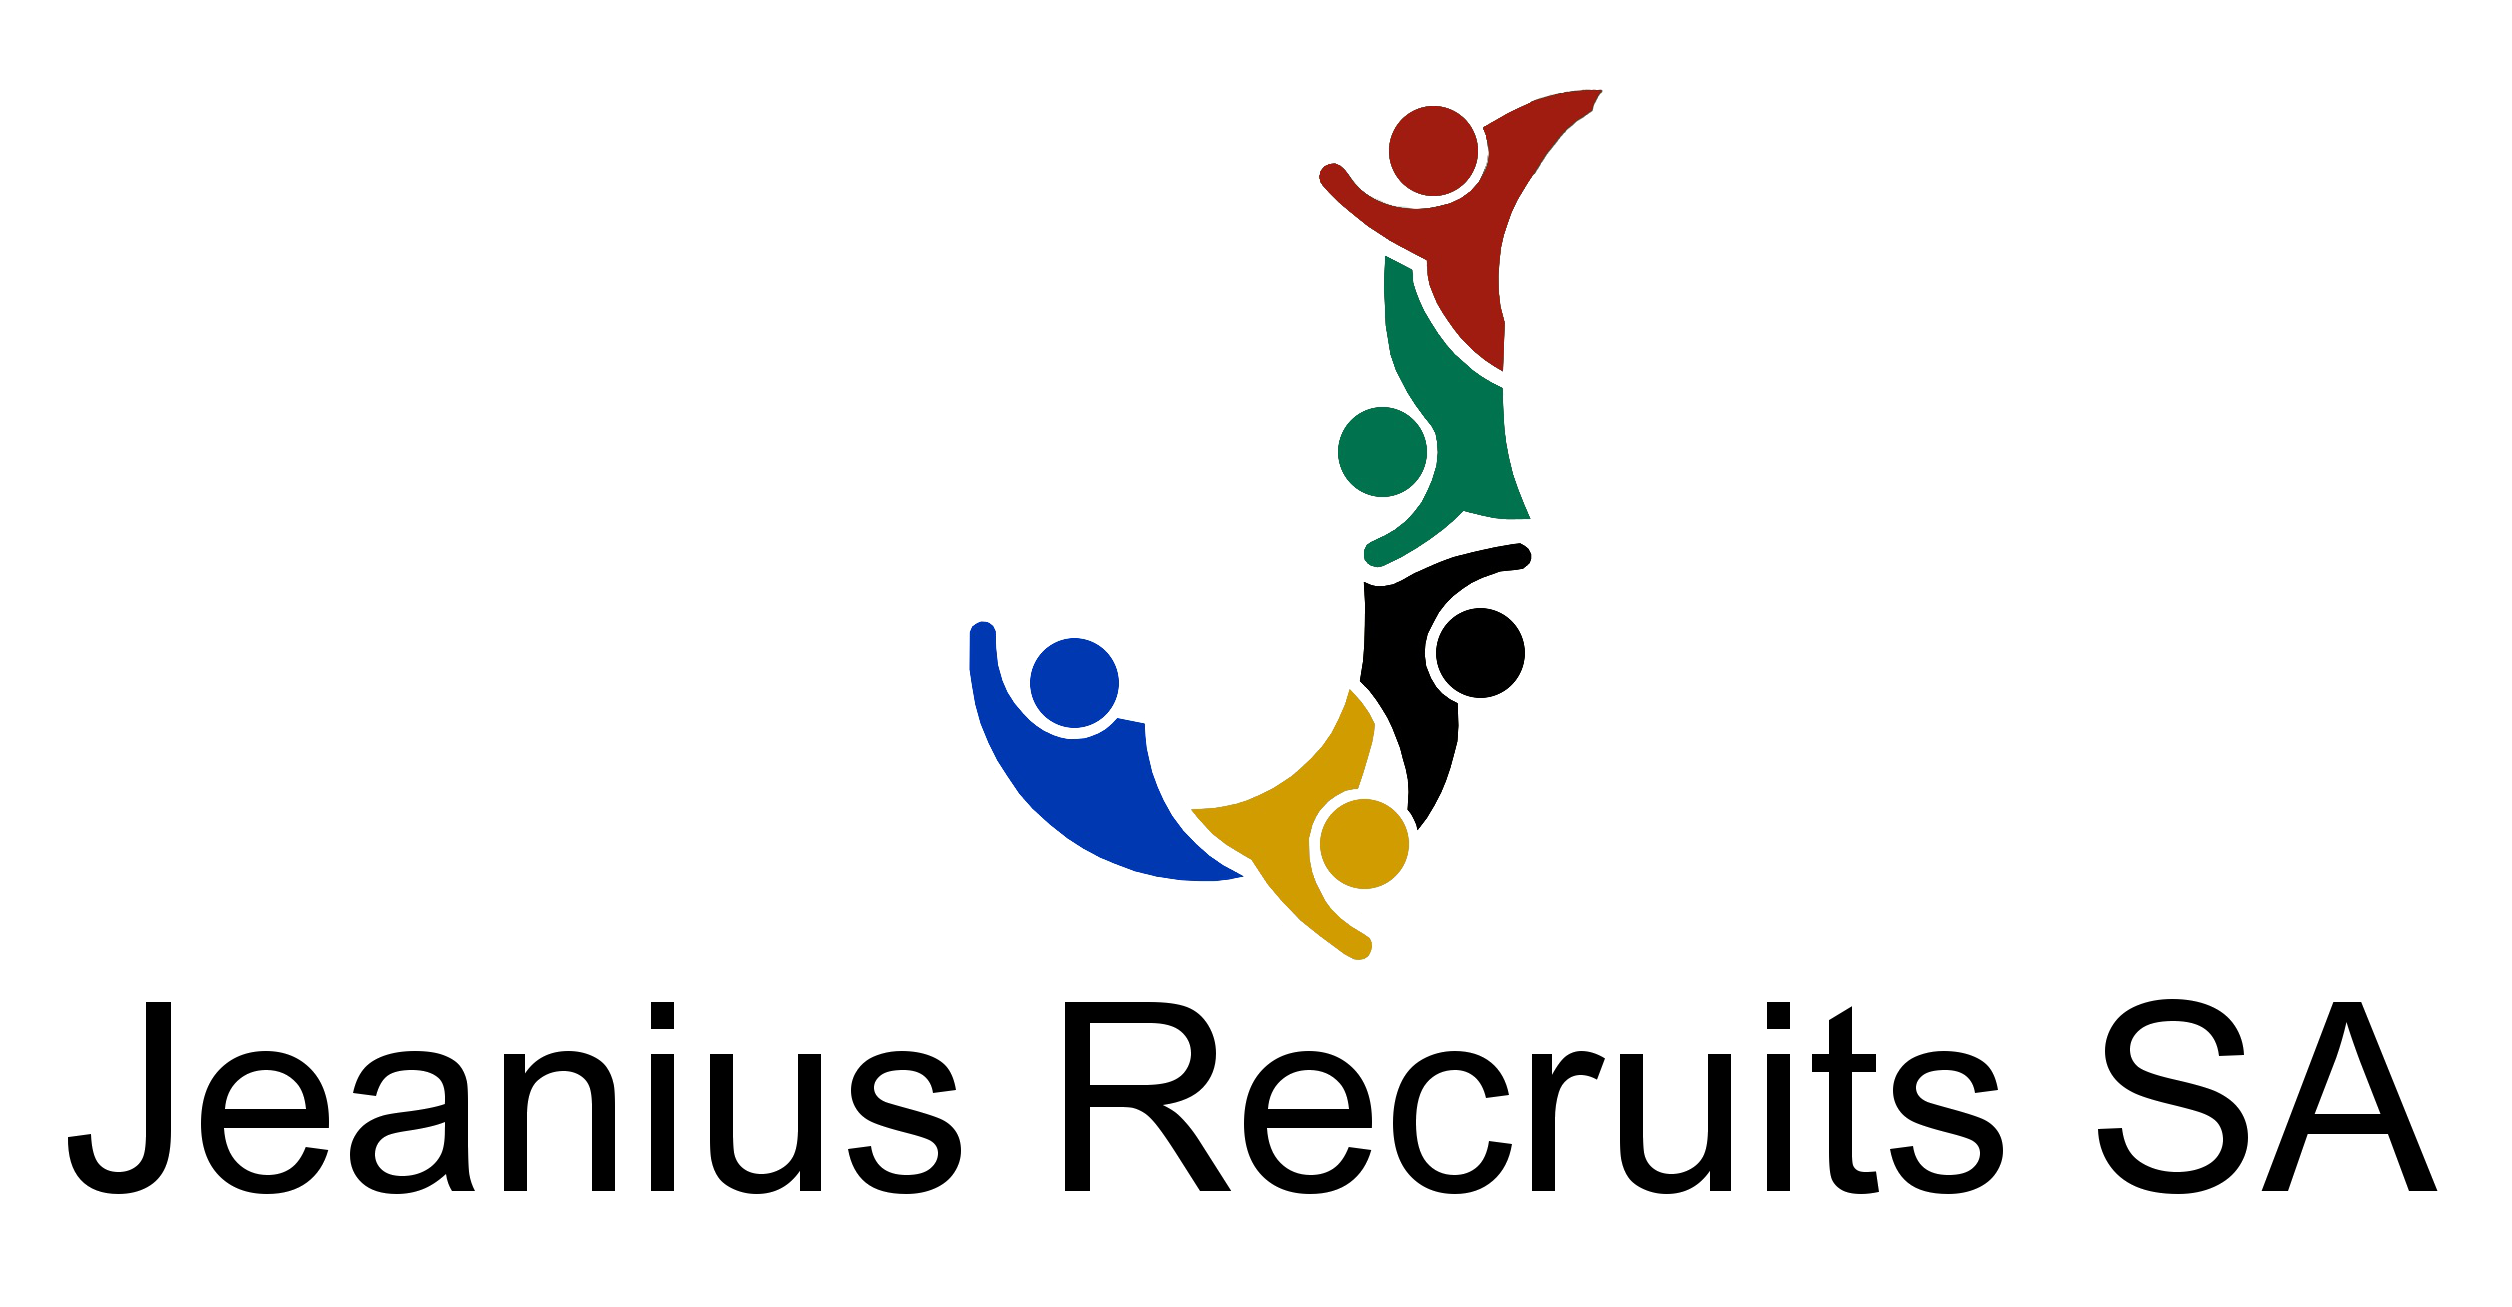 Jeanius Recruits SA